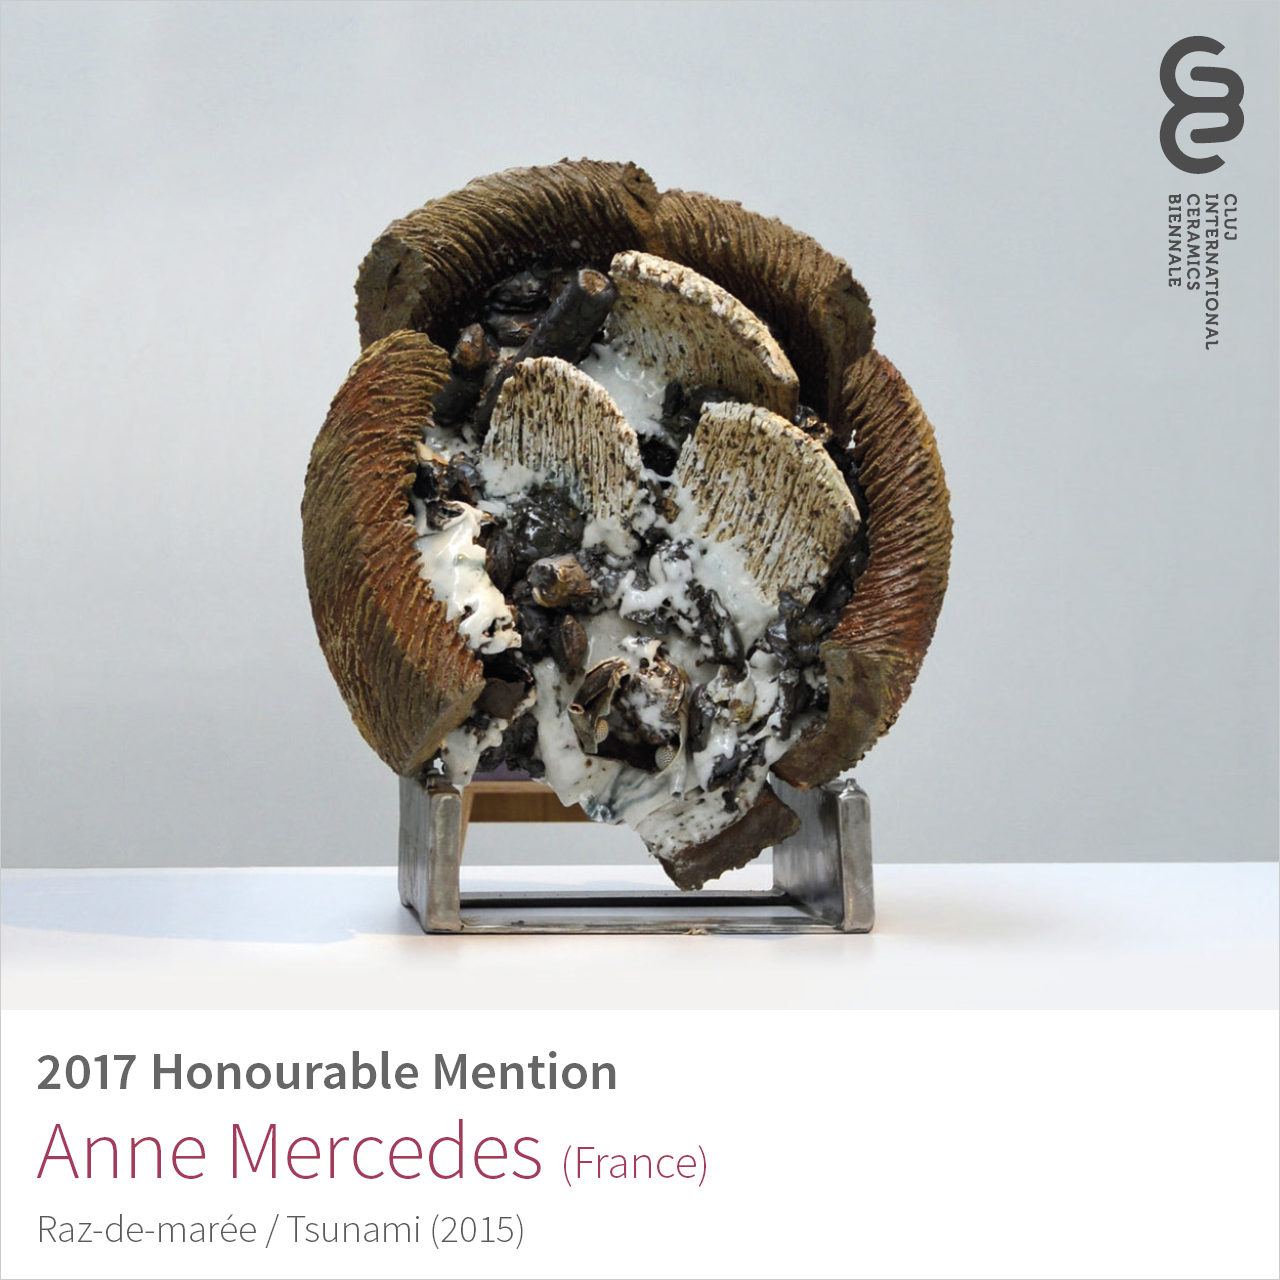 Anne Mercedes (France), Honourable Mention at Cluj Ceramics Biennale 2017